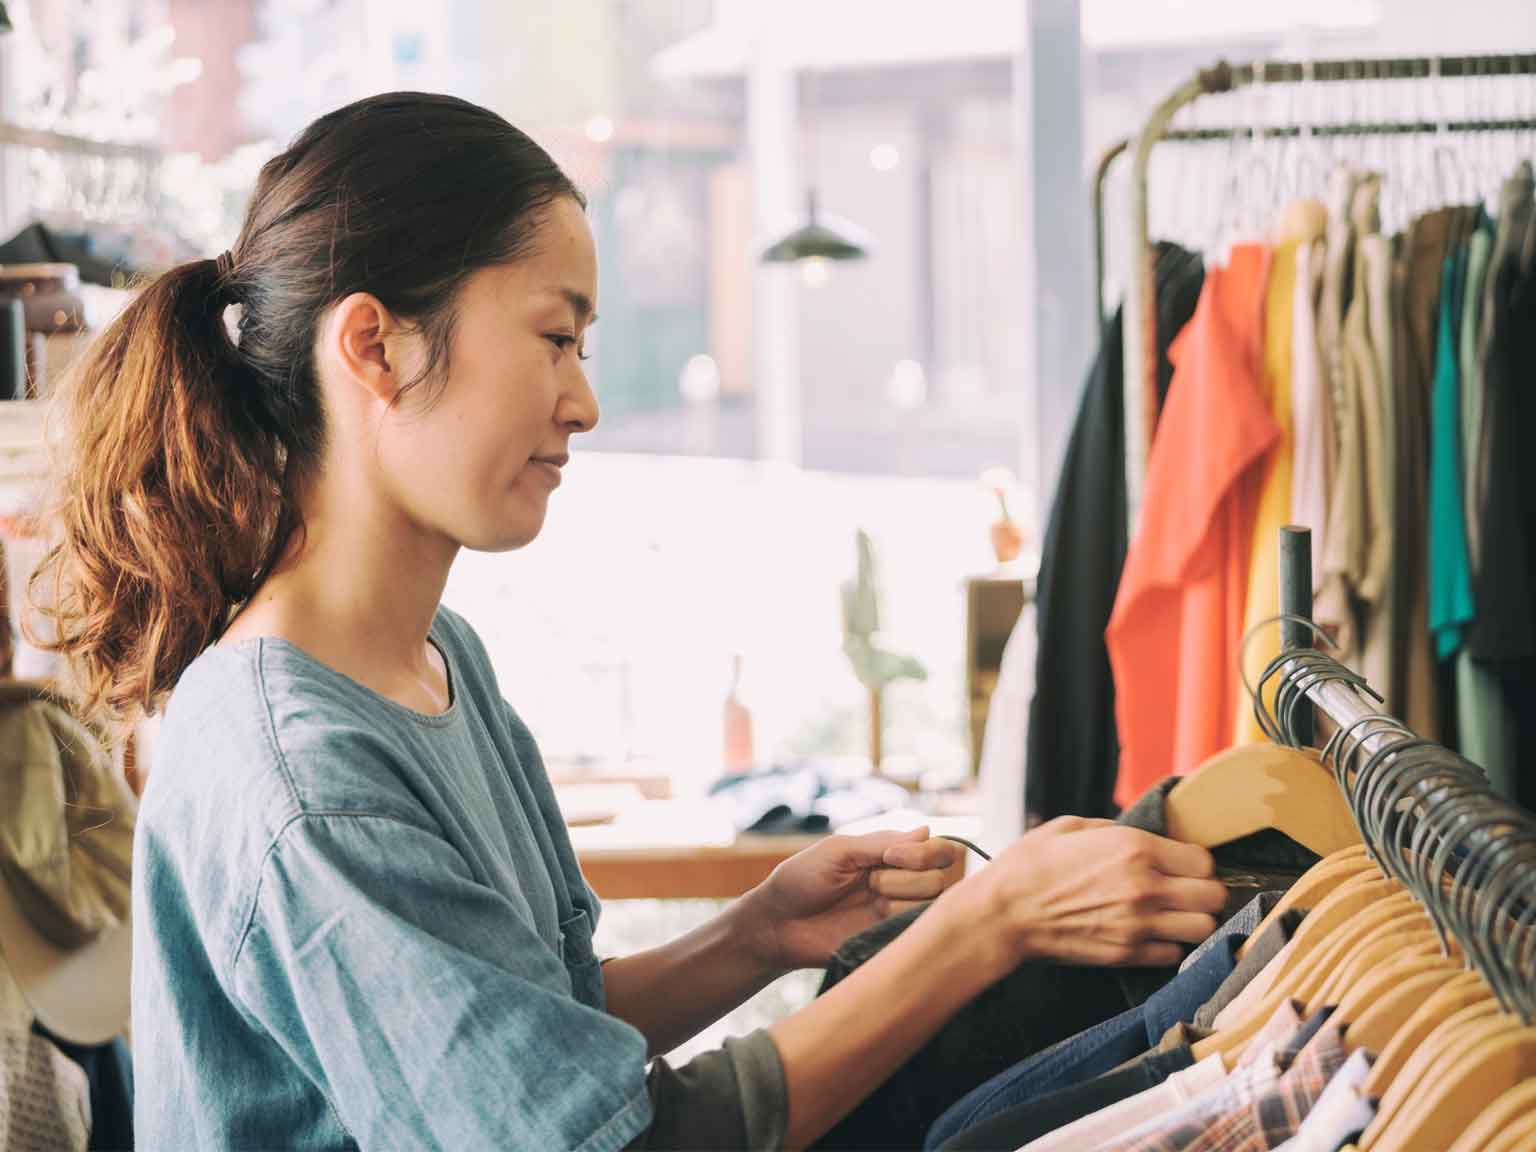 A young woman business owner works in her vintage clothing shop